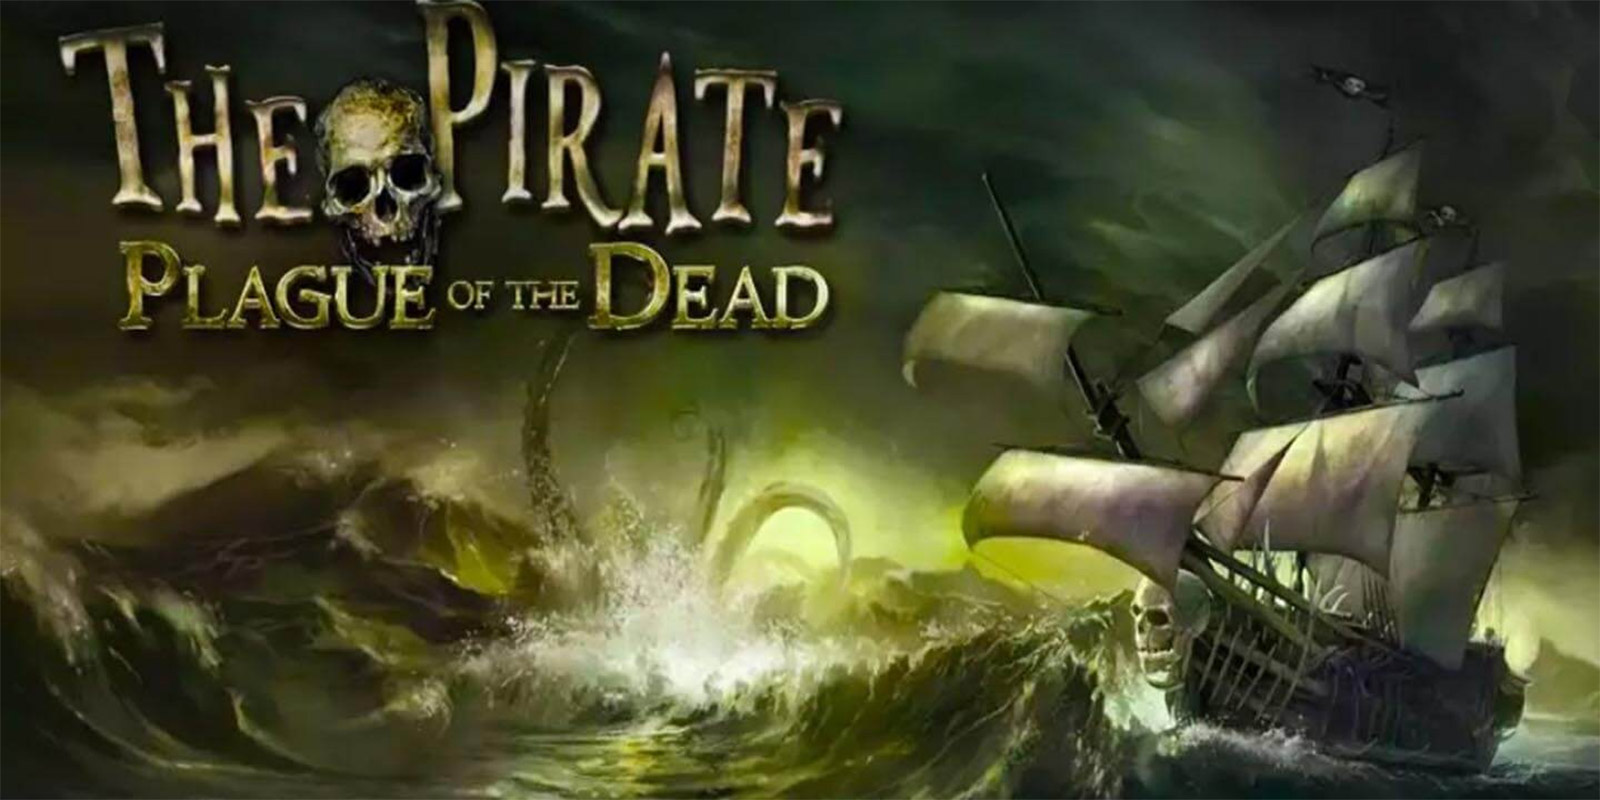 The Pirate: Plague of the Dead Mod Apk 2.9 (Unlimited Money)